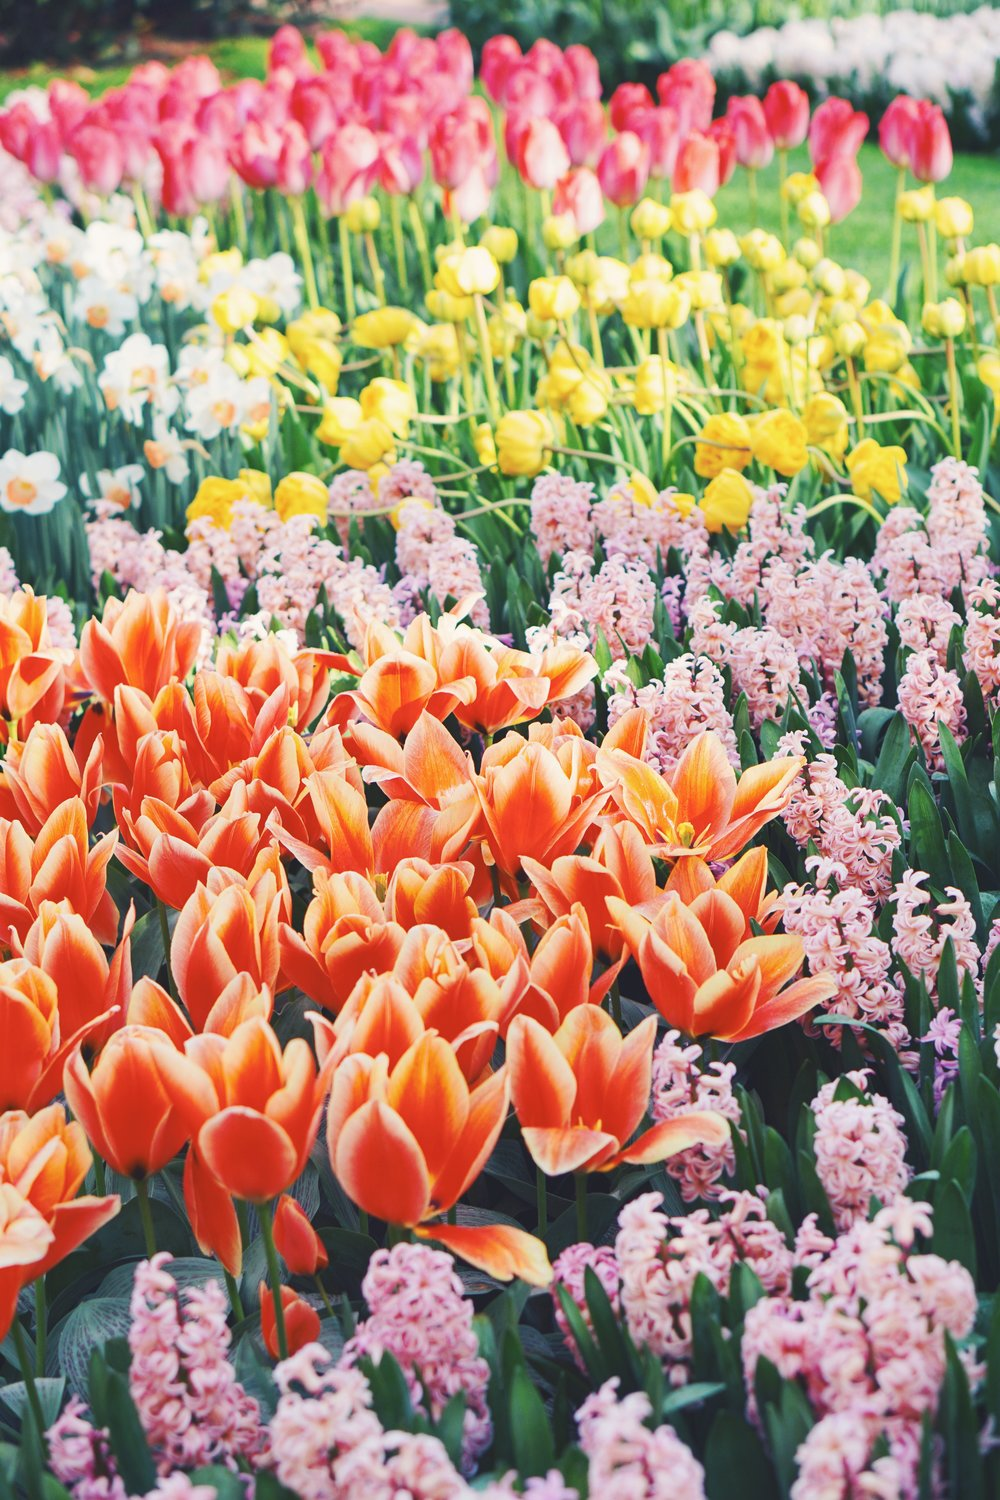 Tulips in Holland 19.jpg